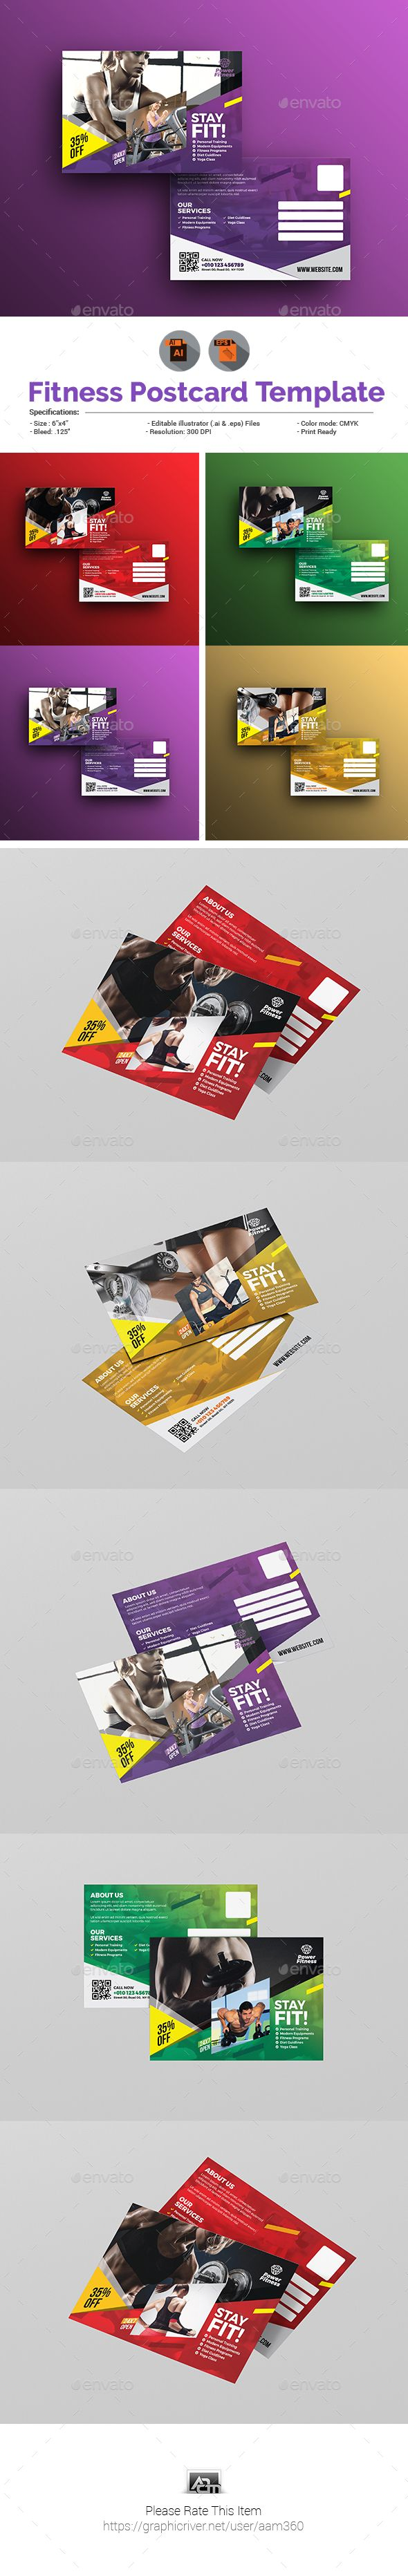 Sports Fitness Gym Postcard Template Cards Invites Print